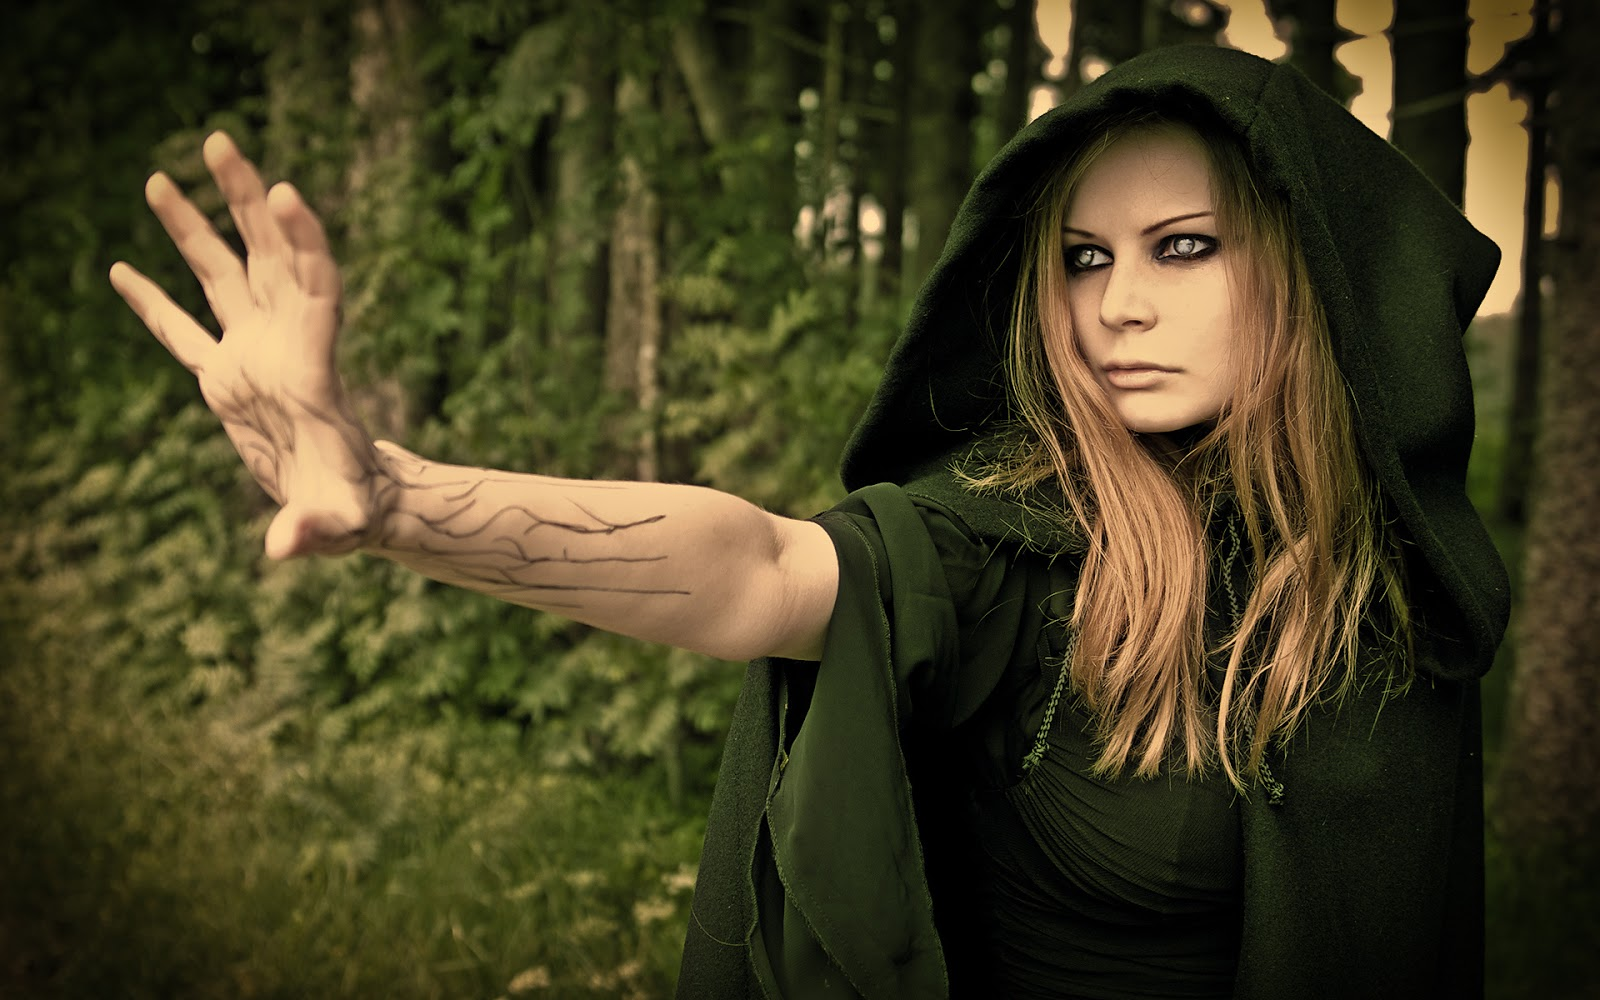 Wallpaper World Evil Witch Wallpapers